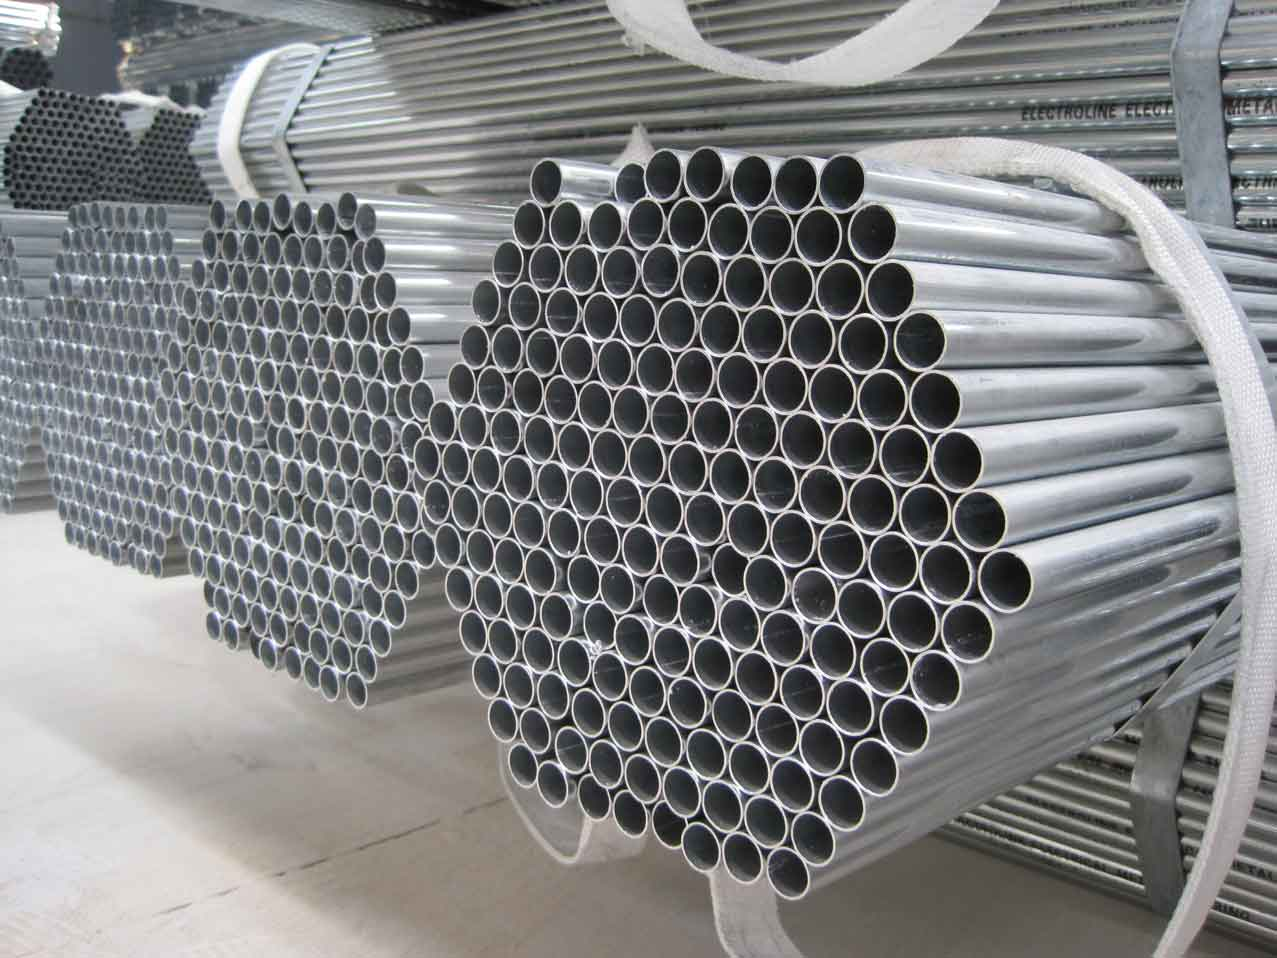 Galvanized carbon steel pipe gi pipe price list in China Dongpengboda